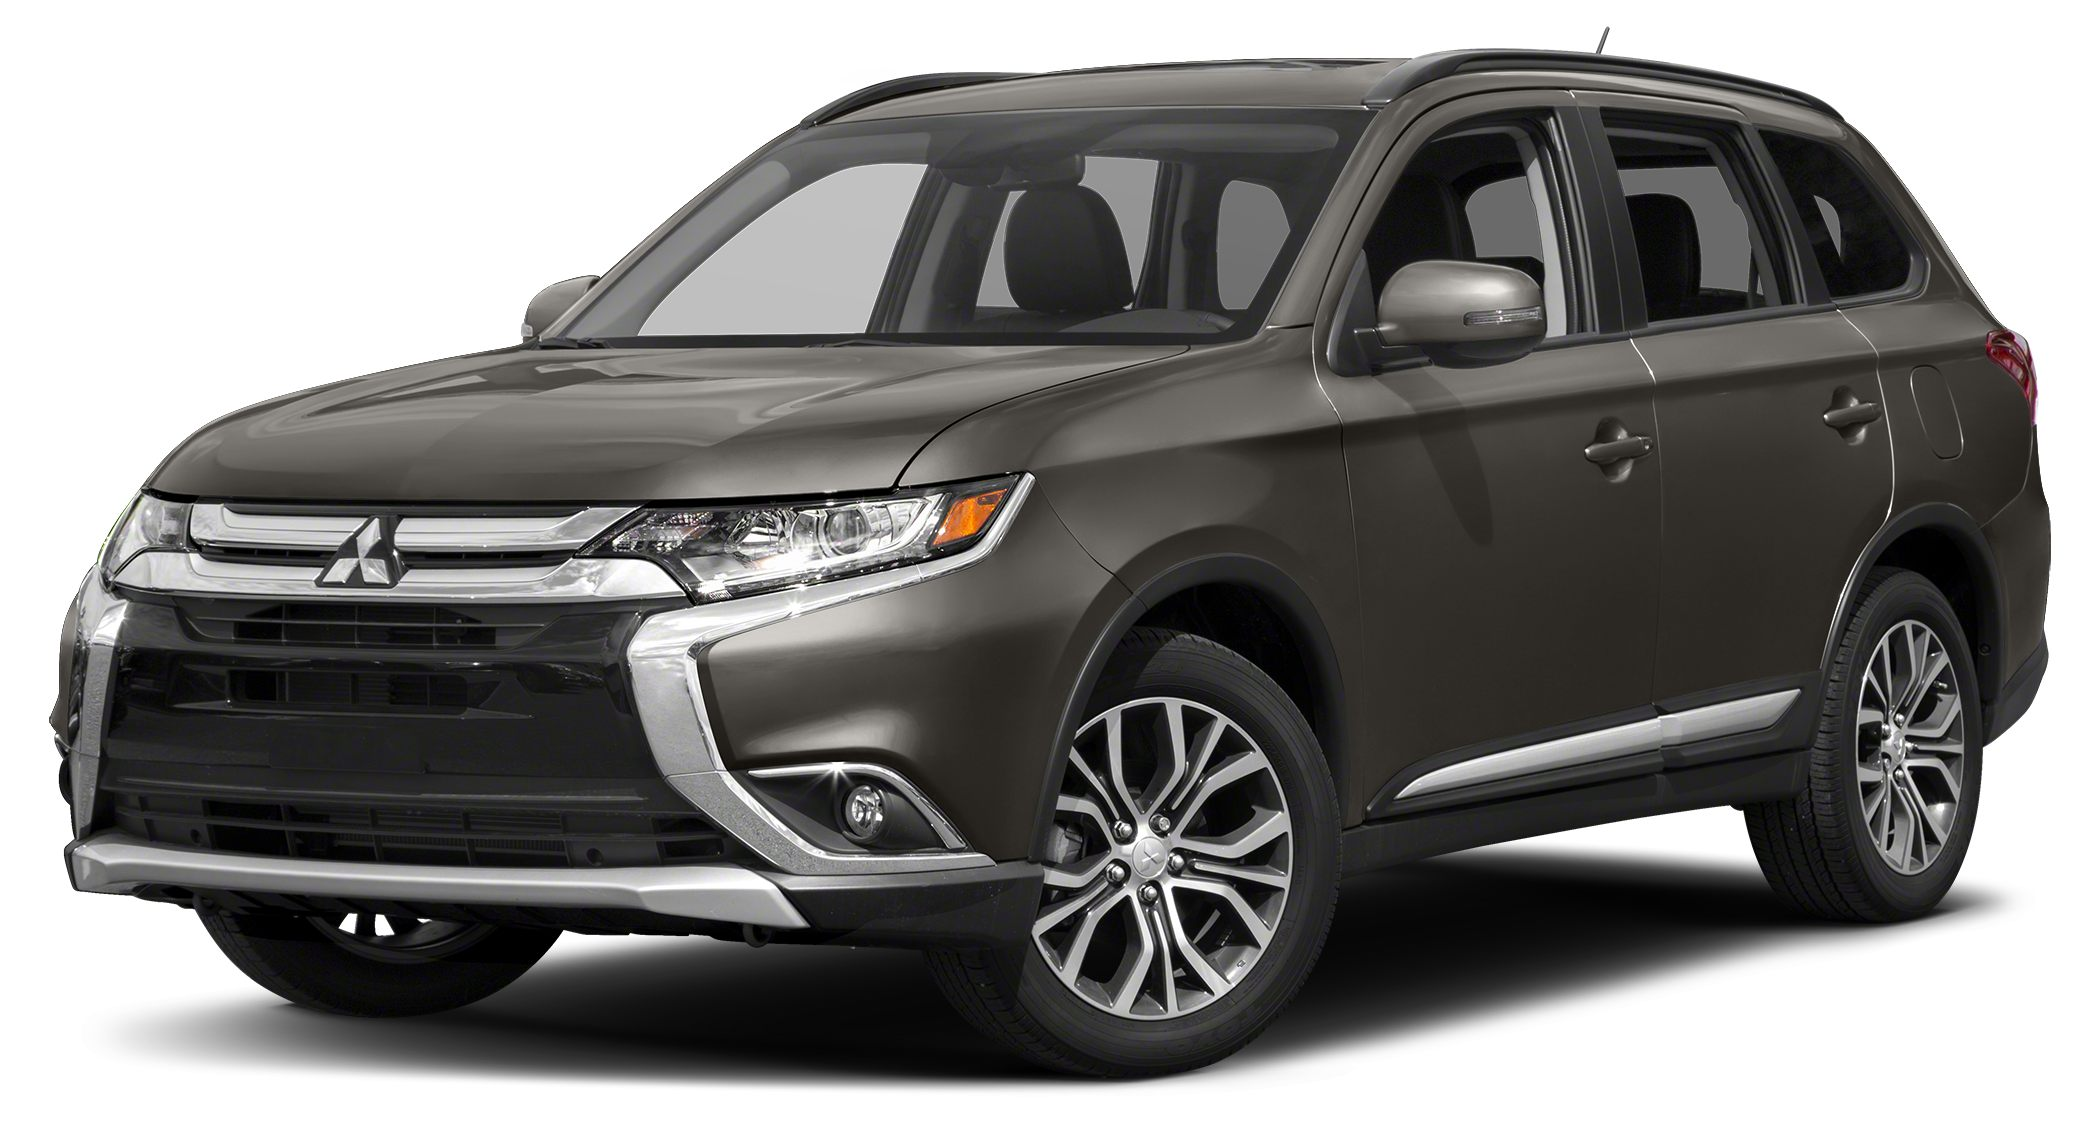 2018 Mitsubishi Outlander LE The sleek styling of the 2018 Mitsubishi Outlander adds a dash of coo